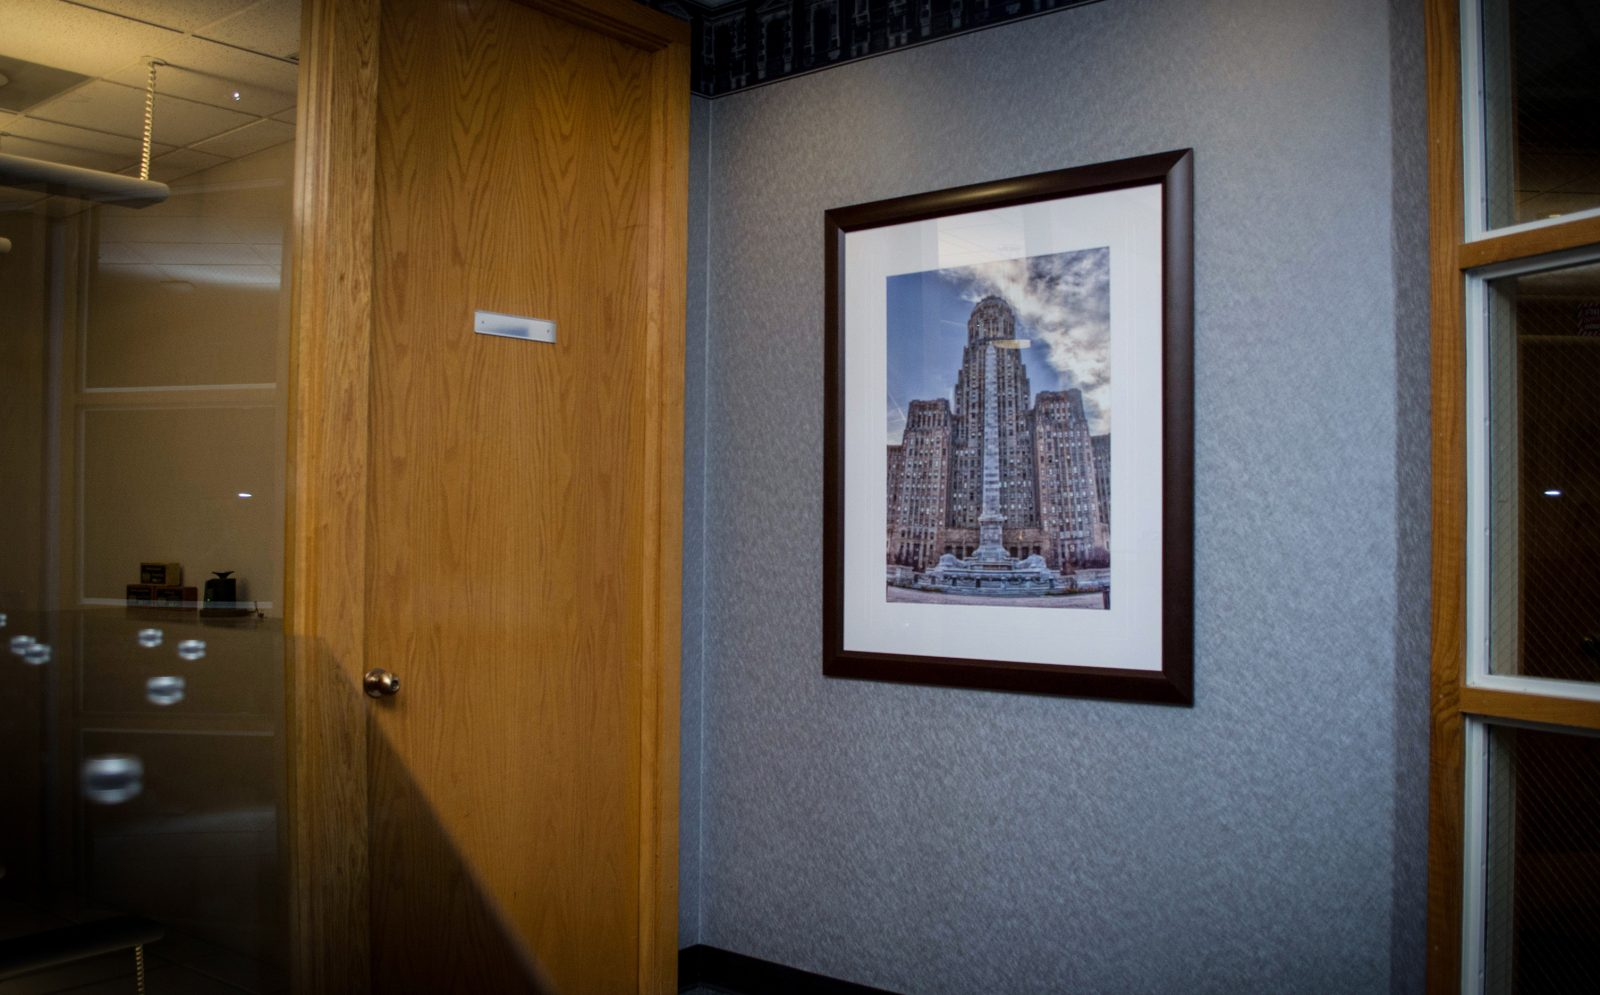 a framed photograph of a high rise building